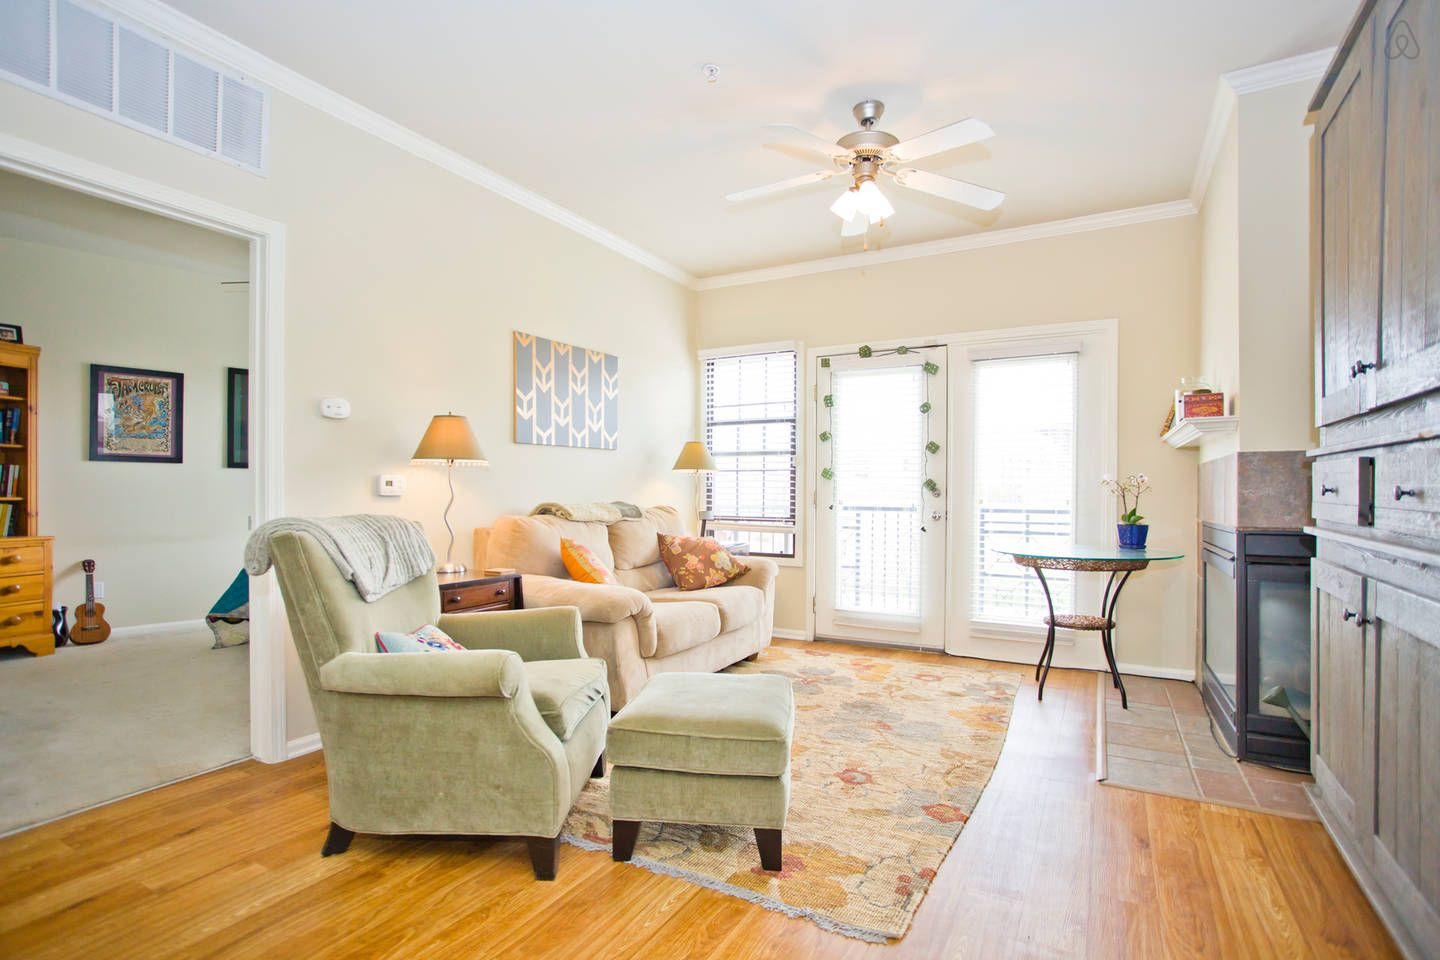 1 bedroom apartment downtown vacation rental in Denver